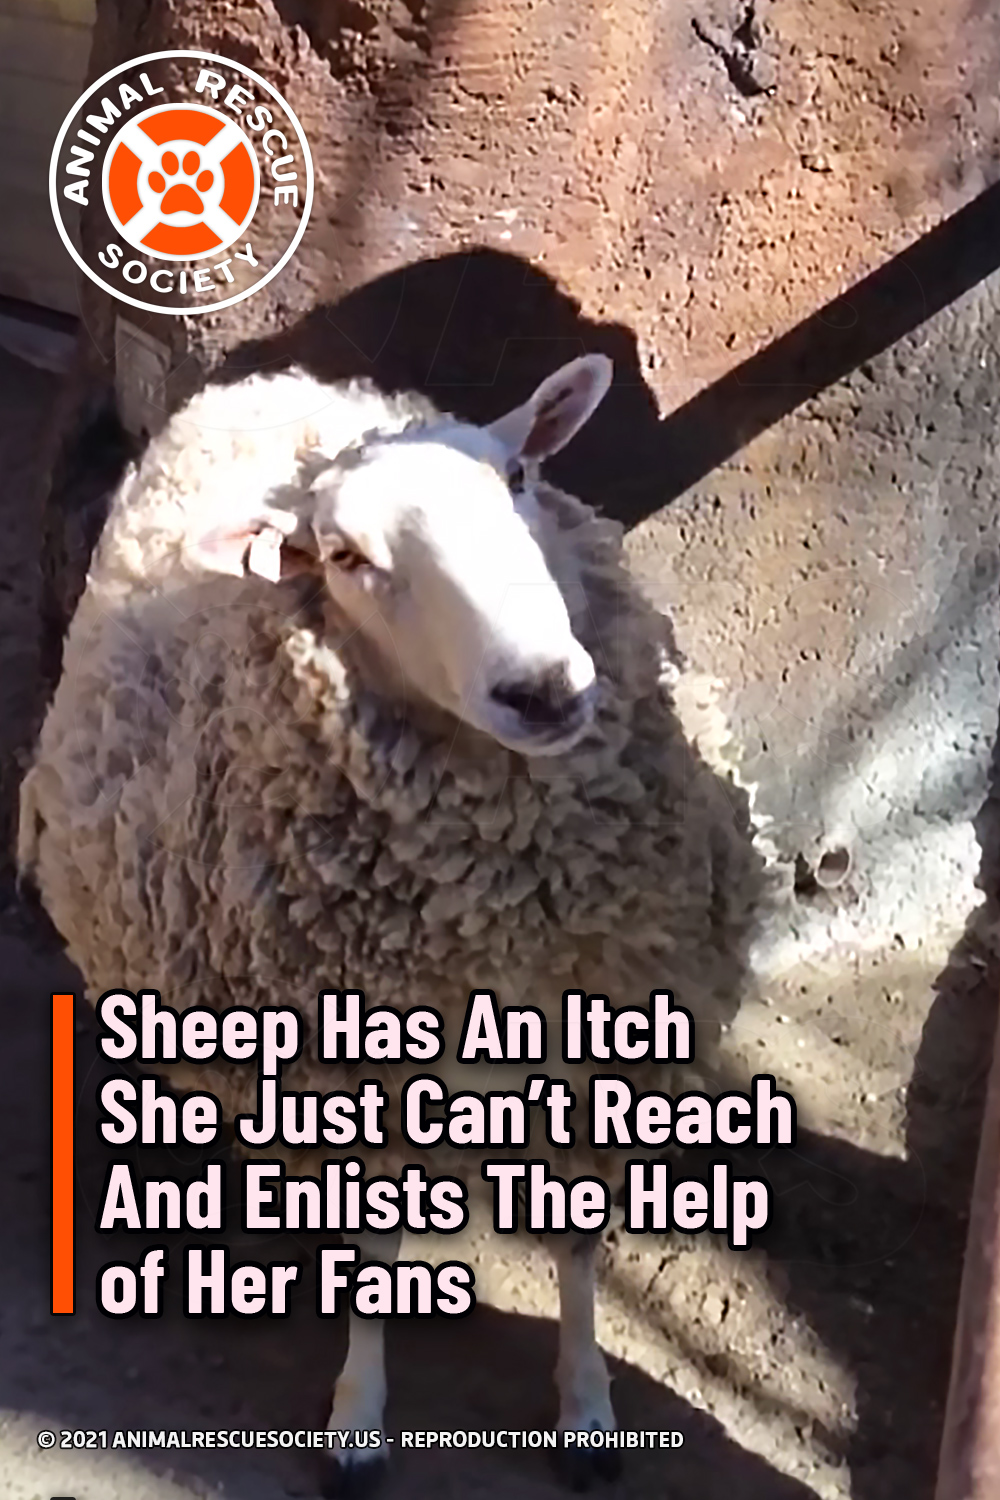 Sheep Has An Itch She Just Can't Reach And Enlists The Help of Her Fans